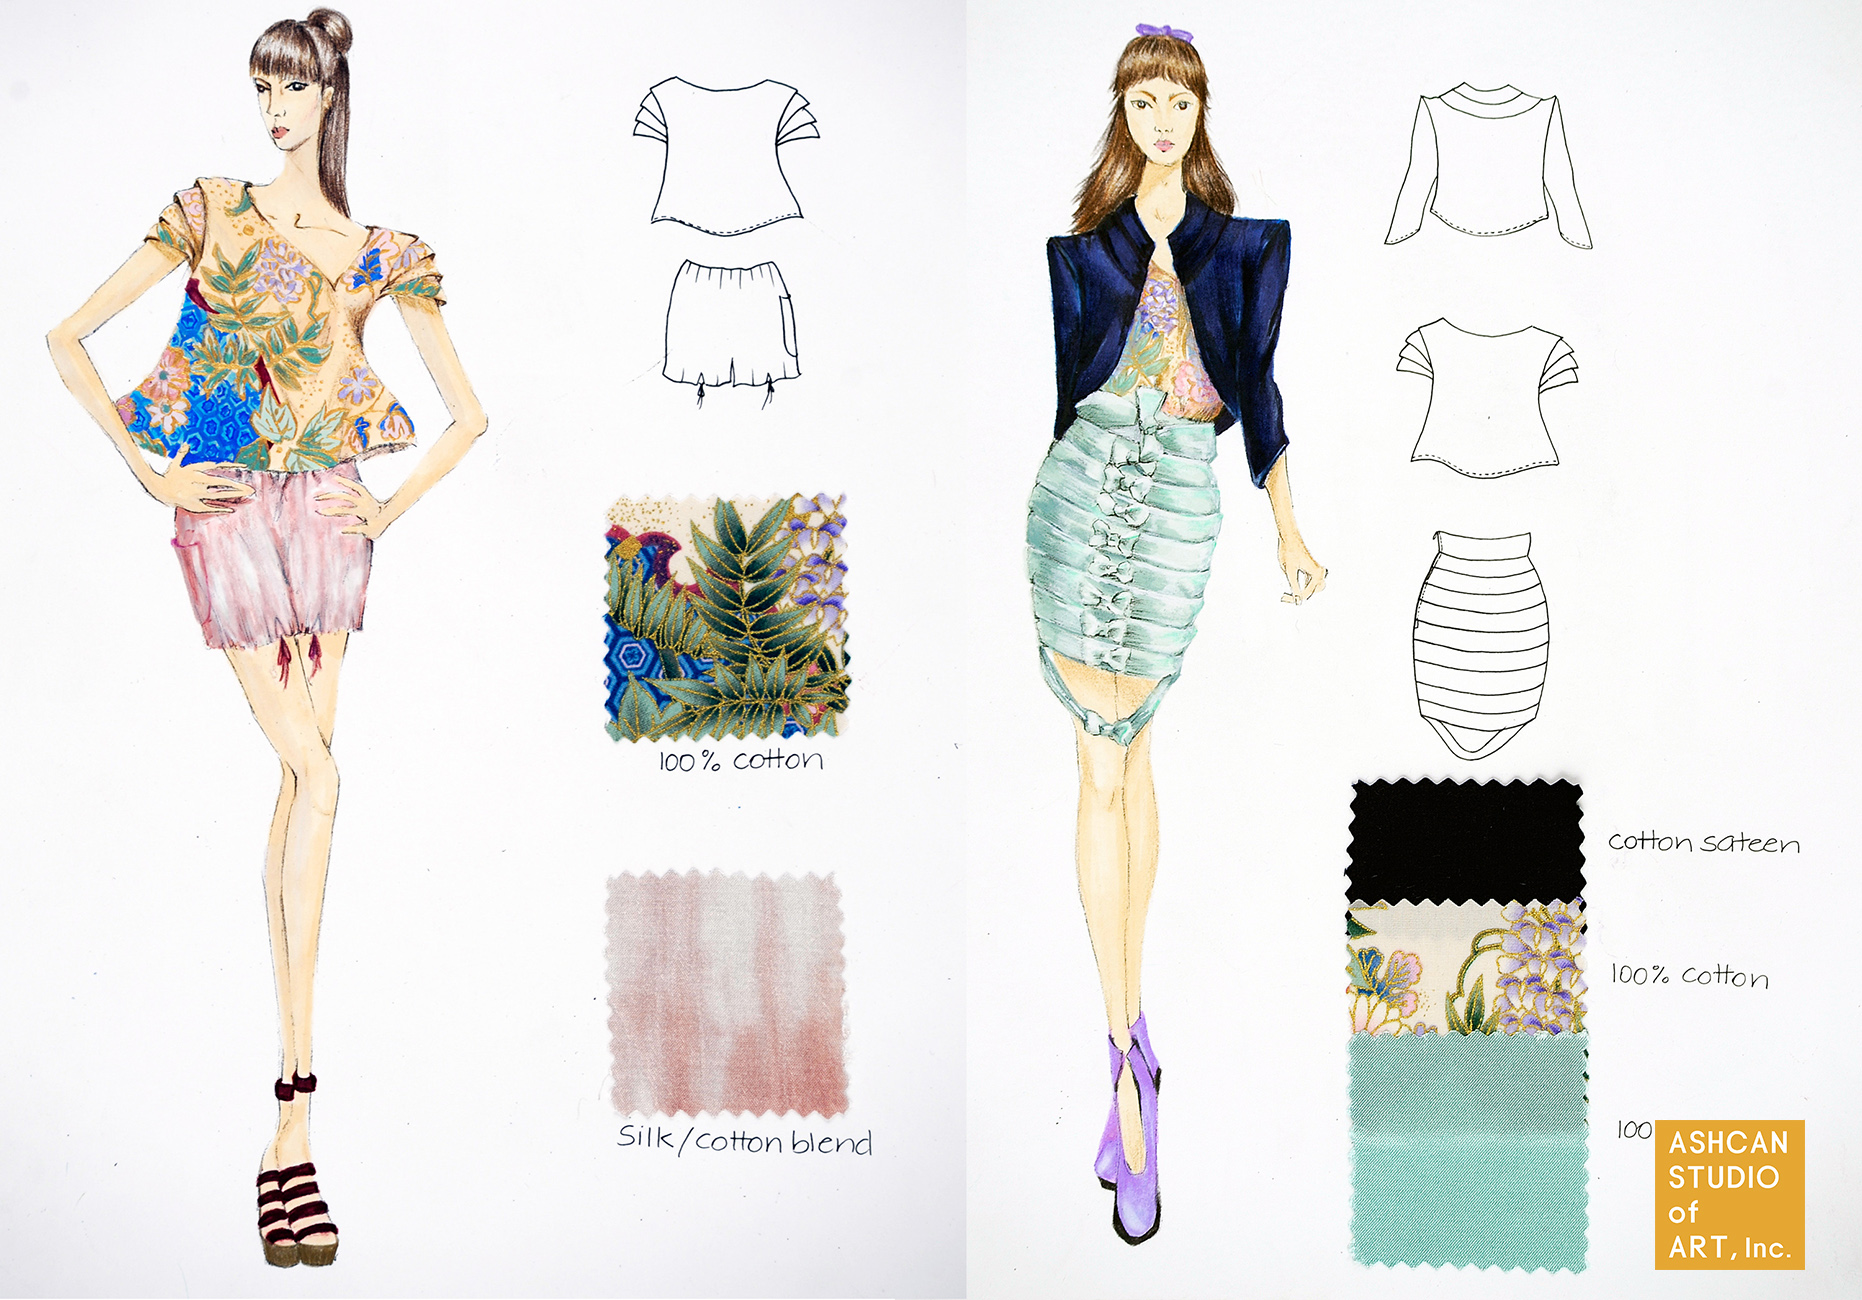 Pratt Fashion Design Portfolio Requirements